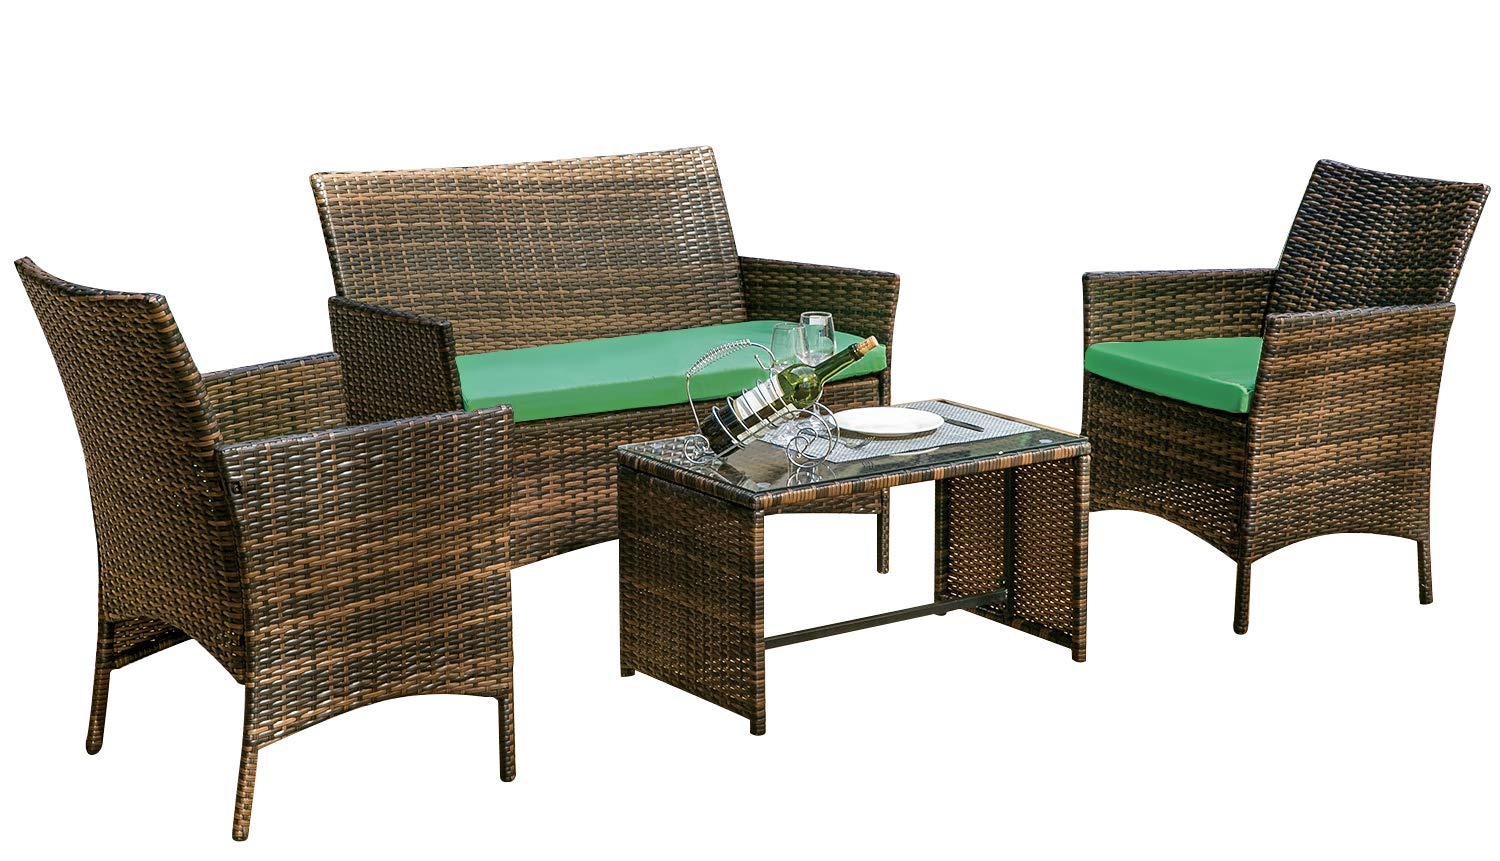 Leisure Zone 4 PC Rattan Patio Furniture Set Wicker Conversation Set Garden Lawn Outdoor Sofa Set with Cushioned Seat and Tempered Glass Table Top (Cushion Green) - 【Solid Construction】This 4 PC patio furniture set is crafted of powder coated metal frame and PE rattan wicker, which is weather-resistant and UV protected for lasting style to stand up to the elements. 【Ultimate Comfort】Come with thick padded seat cushions for comfort and relaxation, wide and deep chairs offer much room to seat comfortably. 【Easy to clean】This coffee table with tempered glass adds a sophisticated touch. It is easy to clean the table top if any tea or coffee drops on it. - patio-furniture, patio, conversation-sets - 71kOj12uTFL -